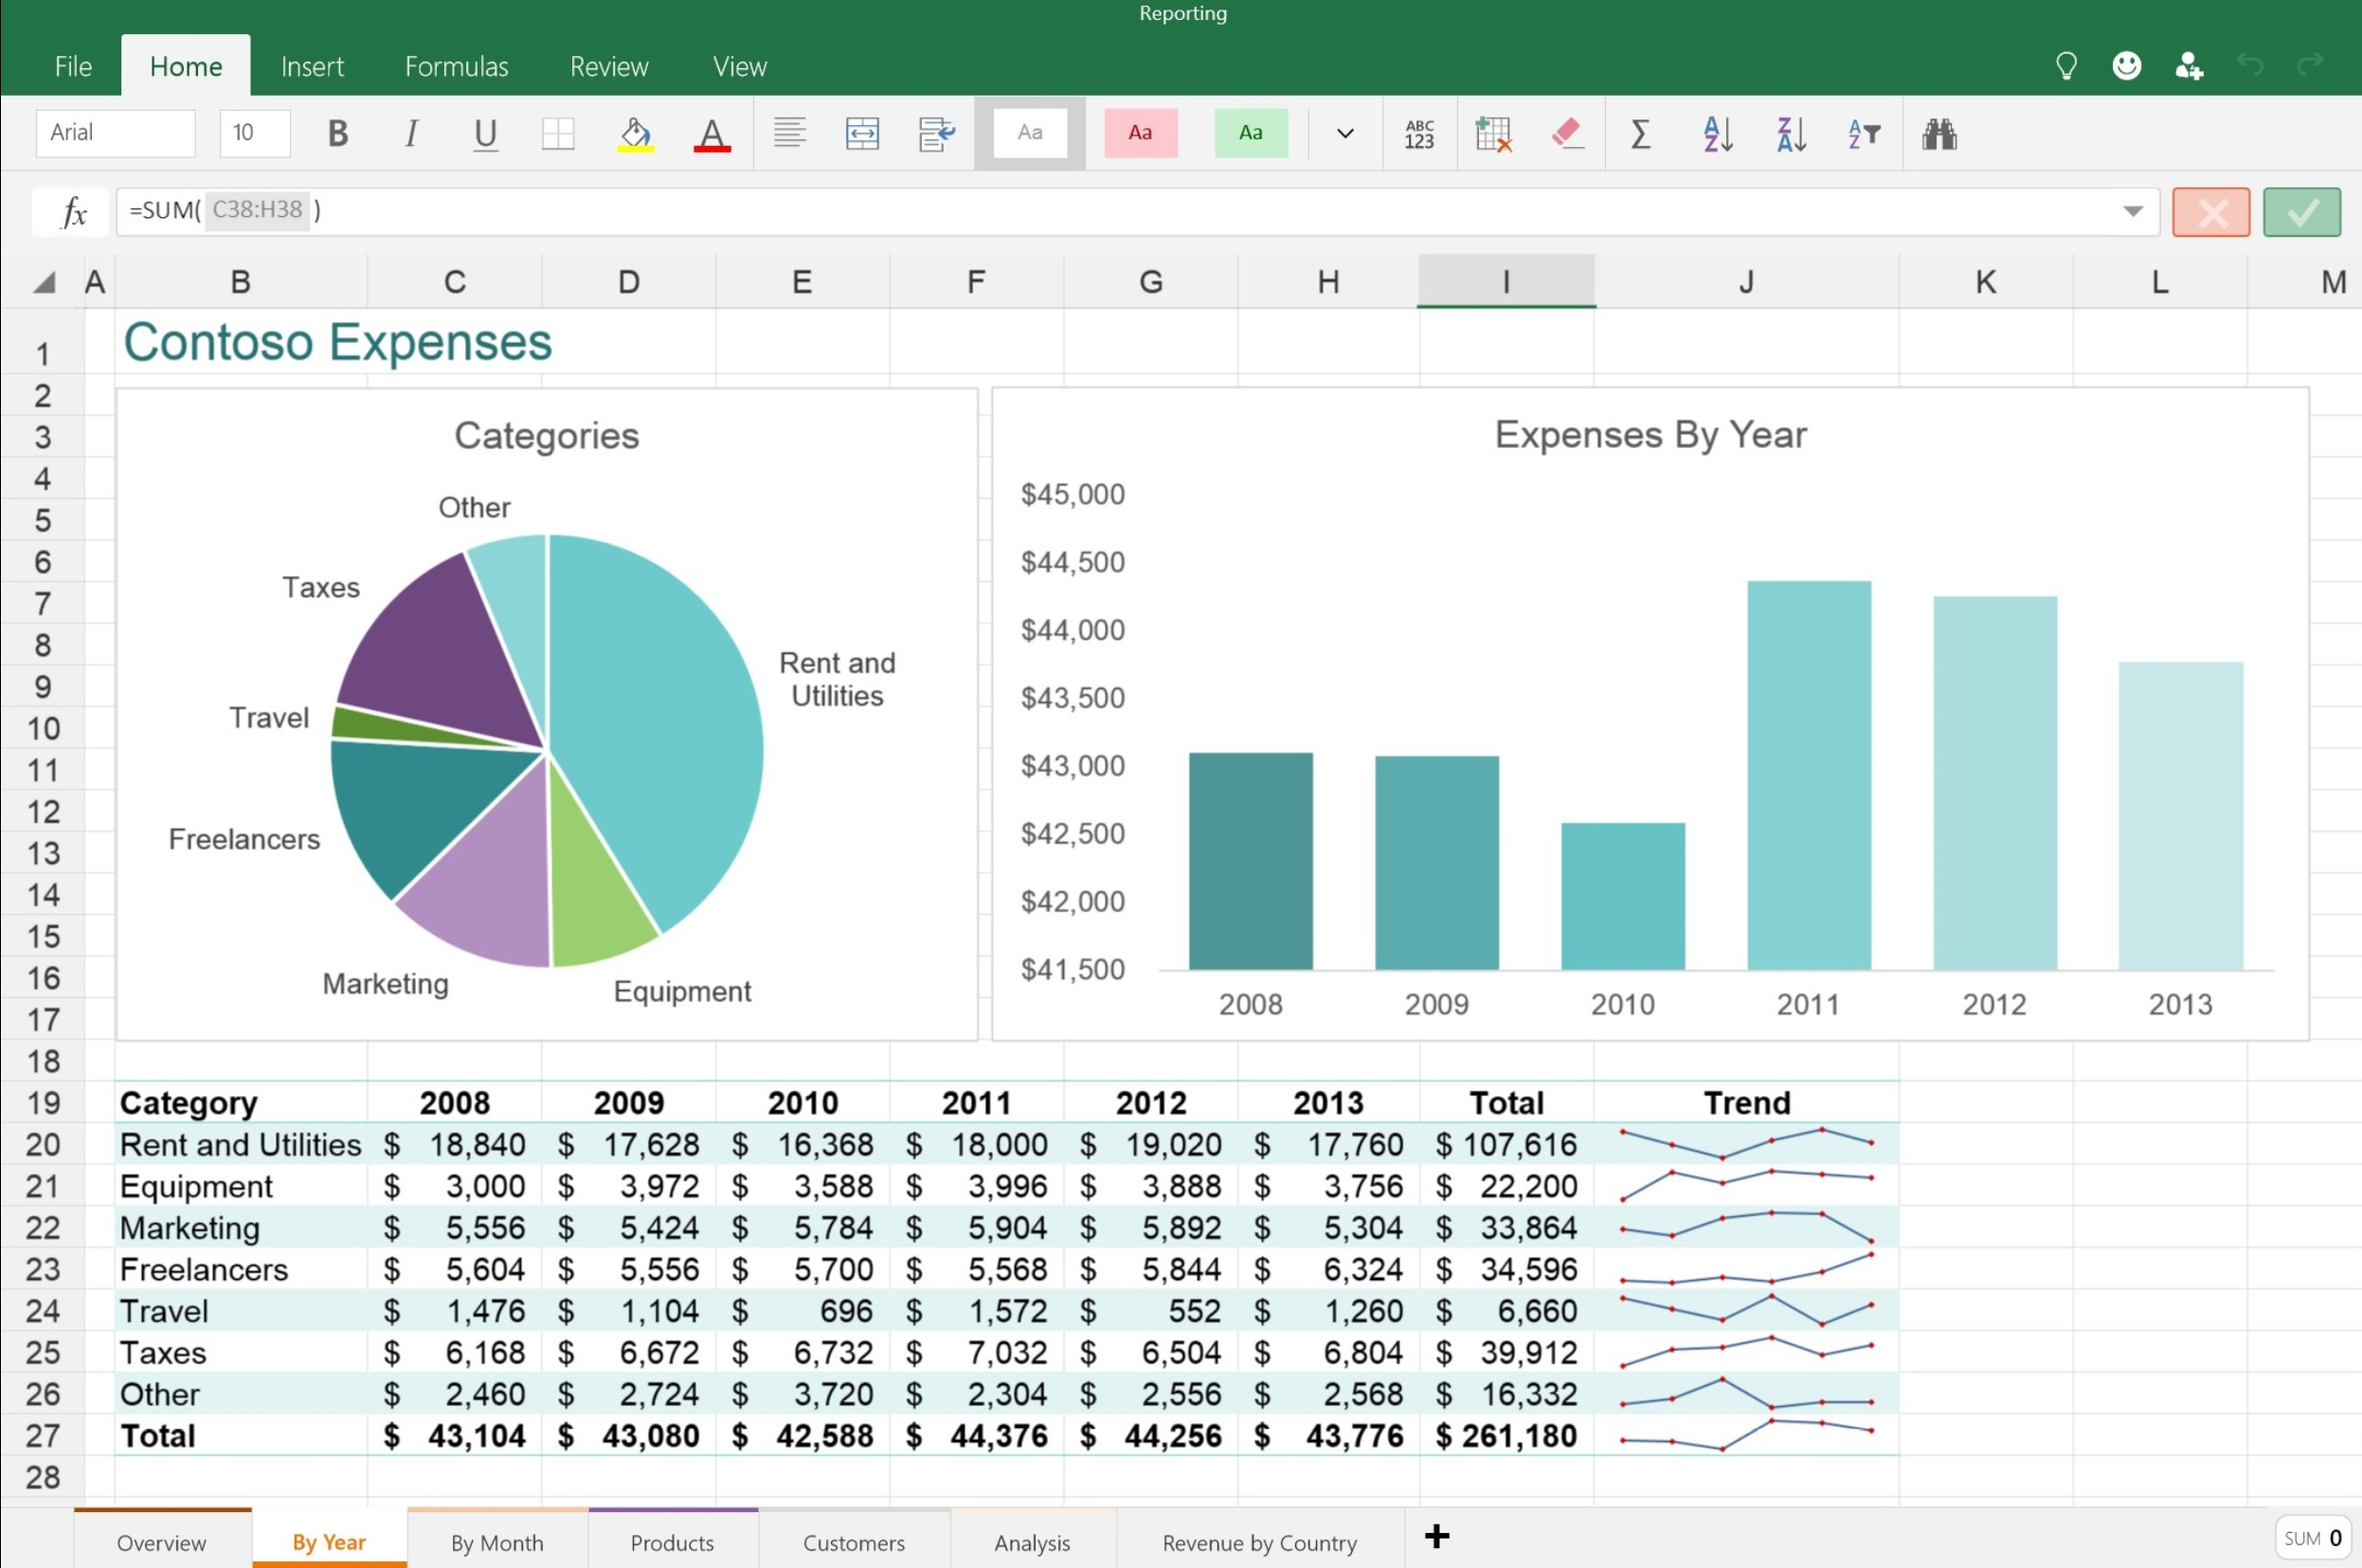 Ediblewildsus  Wonderful Features Available In The New Word Excel And Powerpoint Apps For  With Gorgeous Excel Touch App  With Delightful How To Create A Line Graph On Excel Also Export Outlook To Excel In Addition Convert Date To Year In Excel And Weighted Average On Excel As Well As Excel Vba Iserror Additionally Excel Lookup Vs Vlookup From Mspowerusercom With Ediblewildsus  Gorgeous Features Available In The New Word Excel And Powerpoint Apps For  With Delightful Excel Touch App  And Wonderful How To Create A Line Graph On Excel Also Export Outlook To Excel In Addition Convert Date To Year In Excel From Mspowerusercom